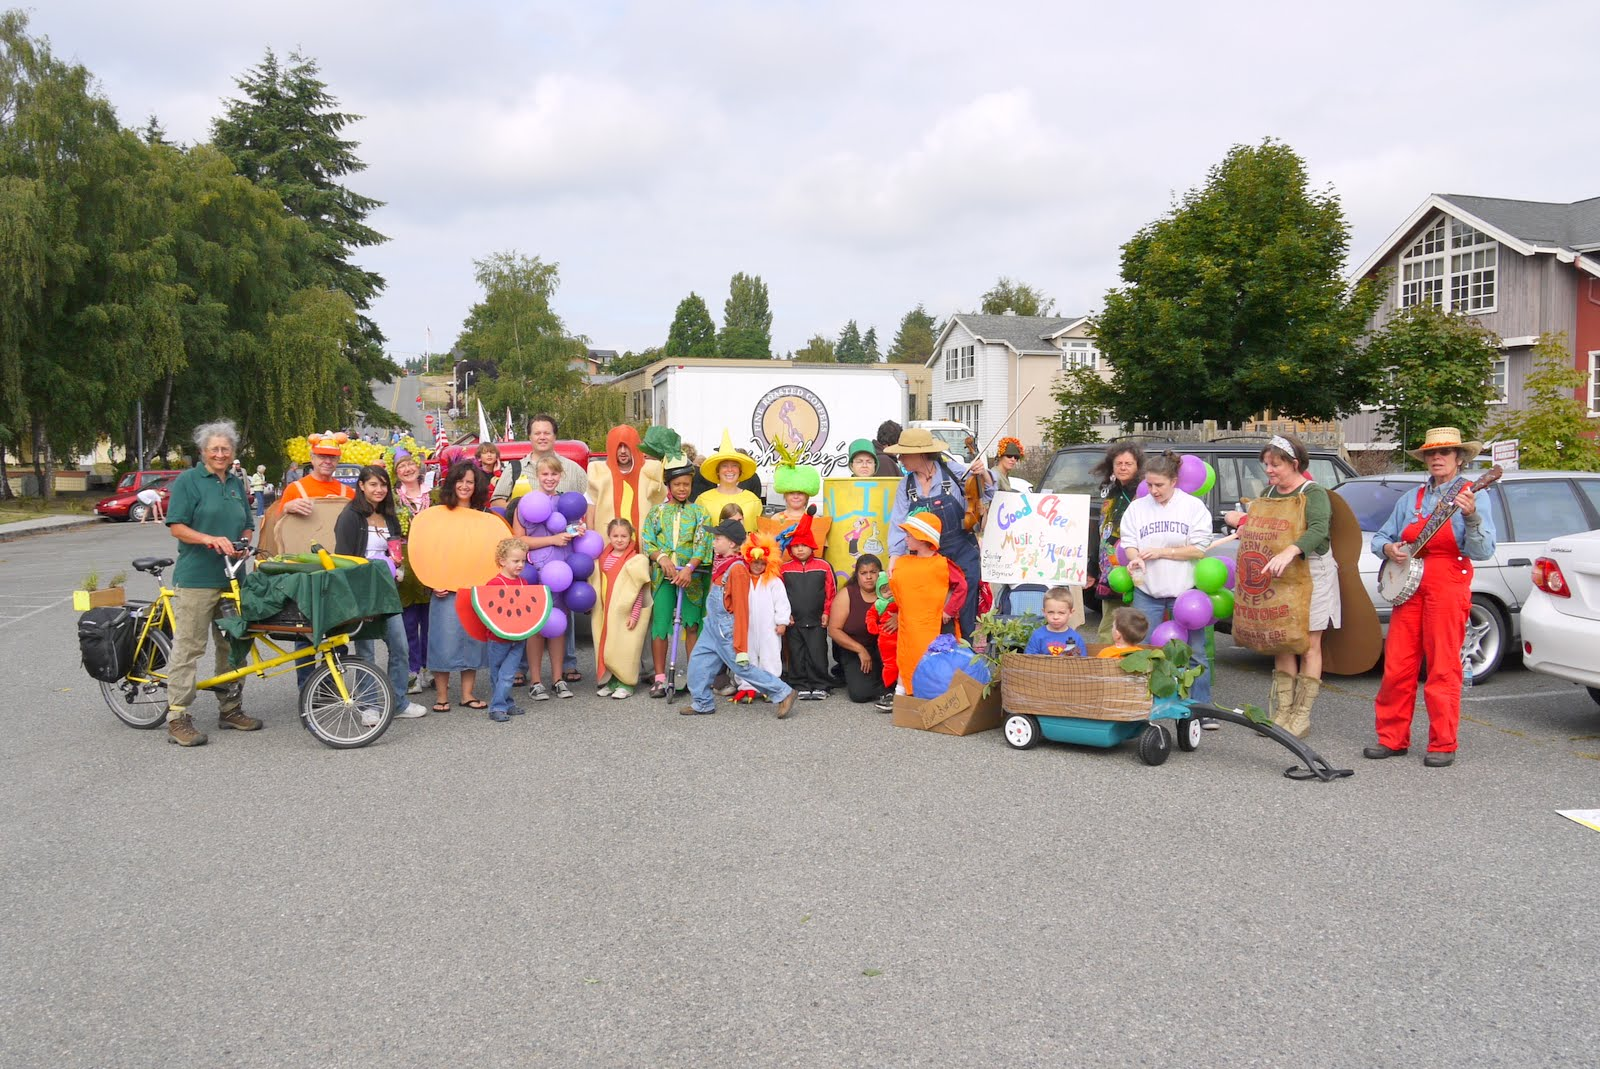 Join Good Cheer in the August 17 Whidbey Island Fair Parade